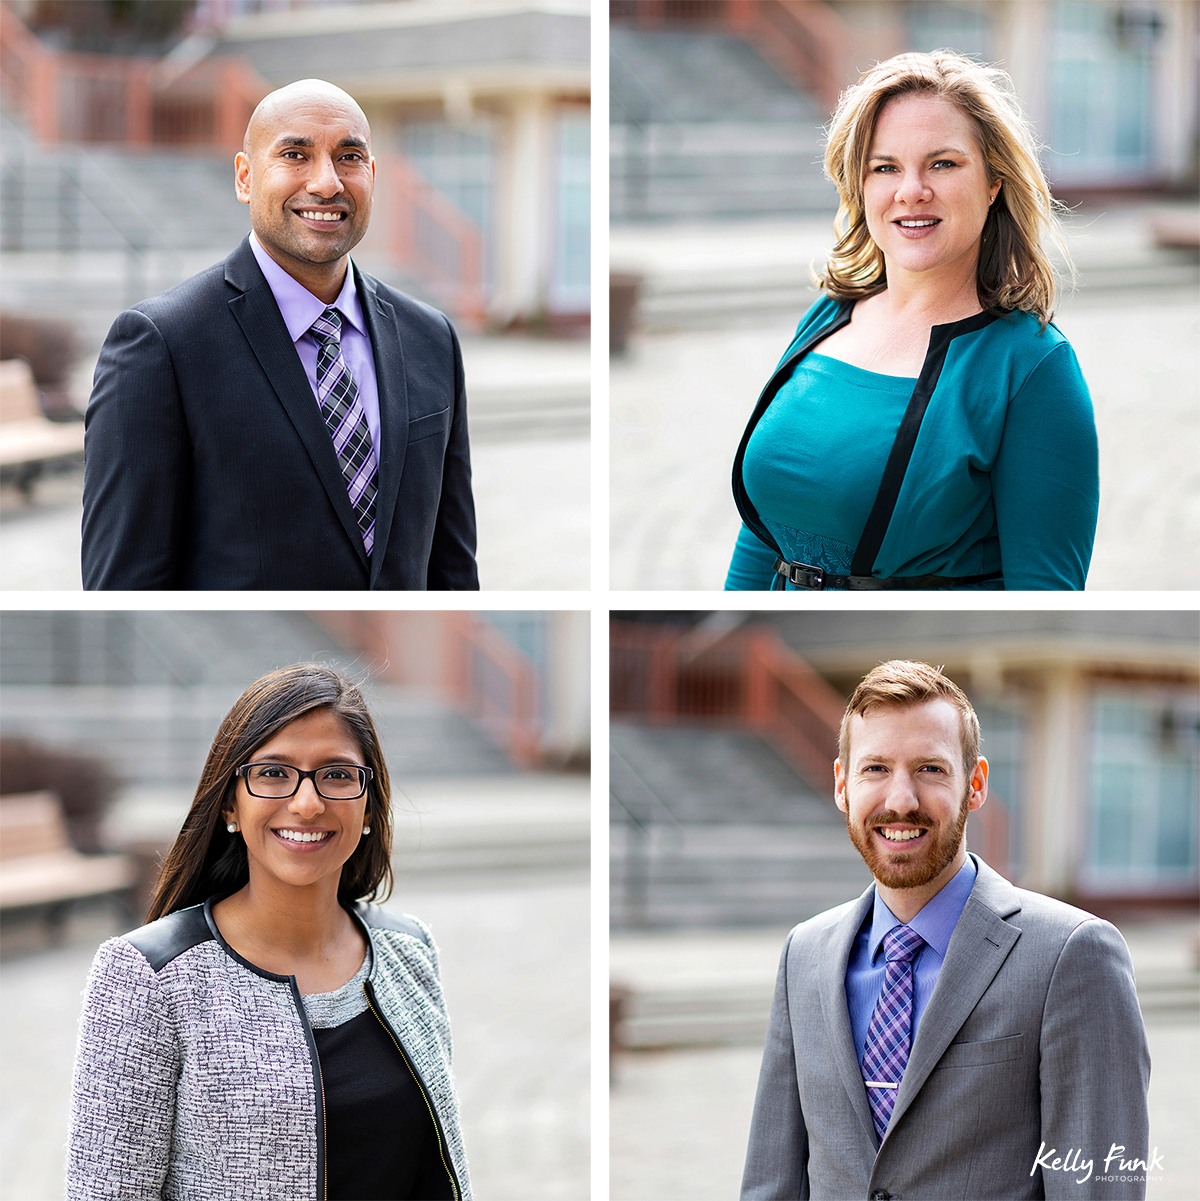 Partners and associates of Chahal and Priddle LLP pose for head shots during a commercial branding shoot in Kamloops, British Columbia, Canada